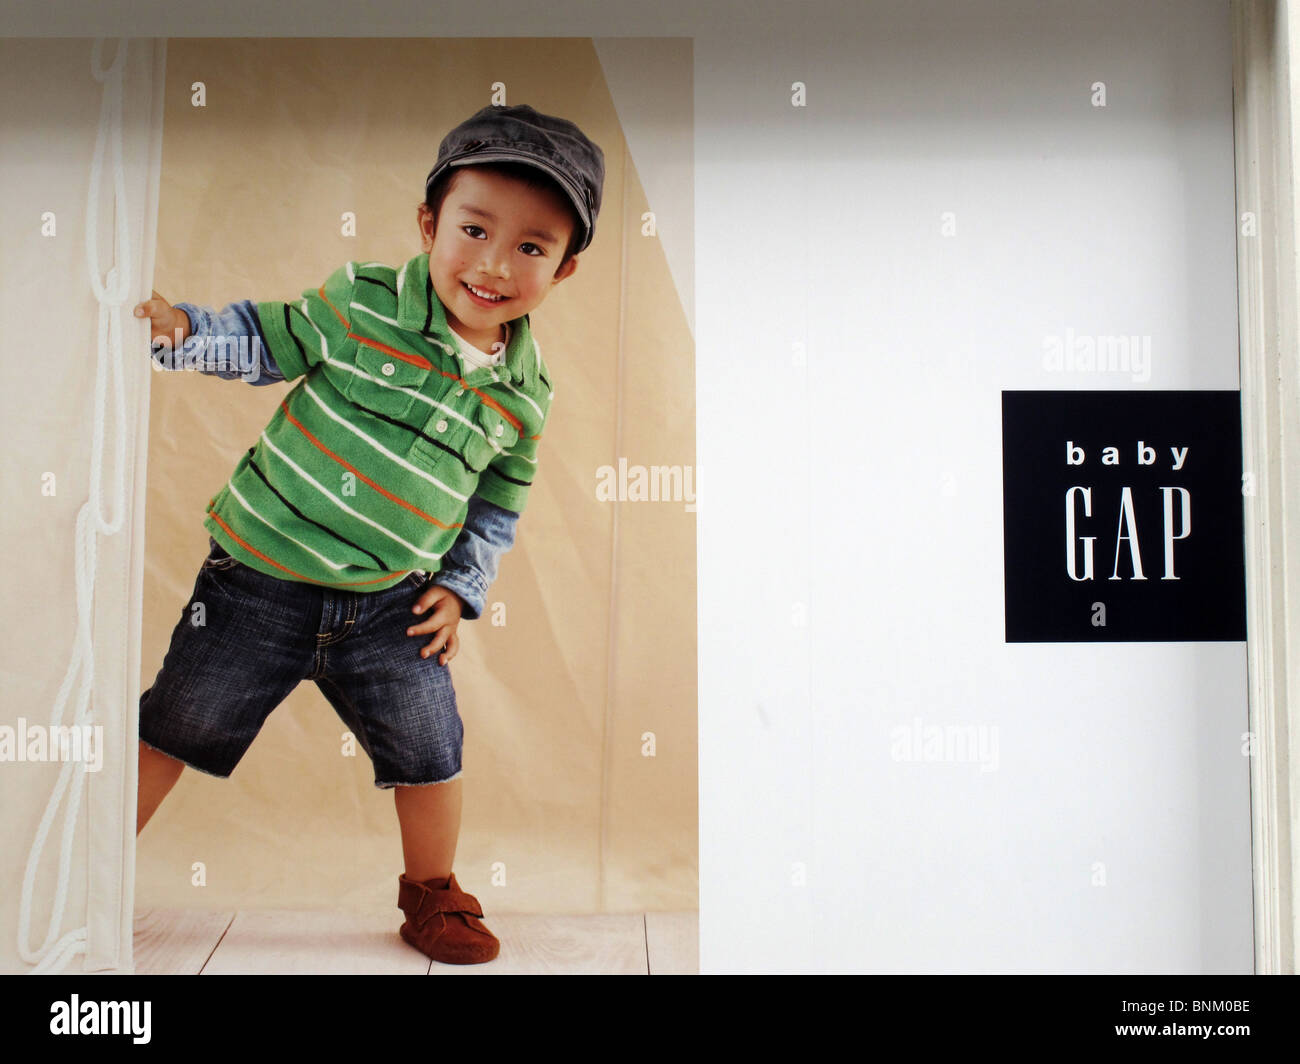 Baby Gap Advert child cute poster logo clothes Stock Photo ...